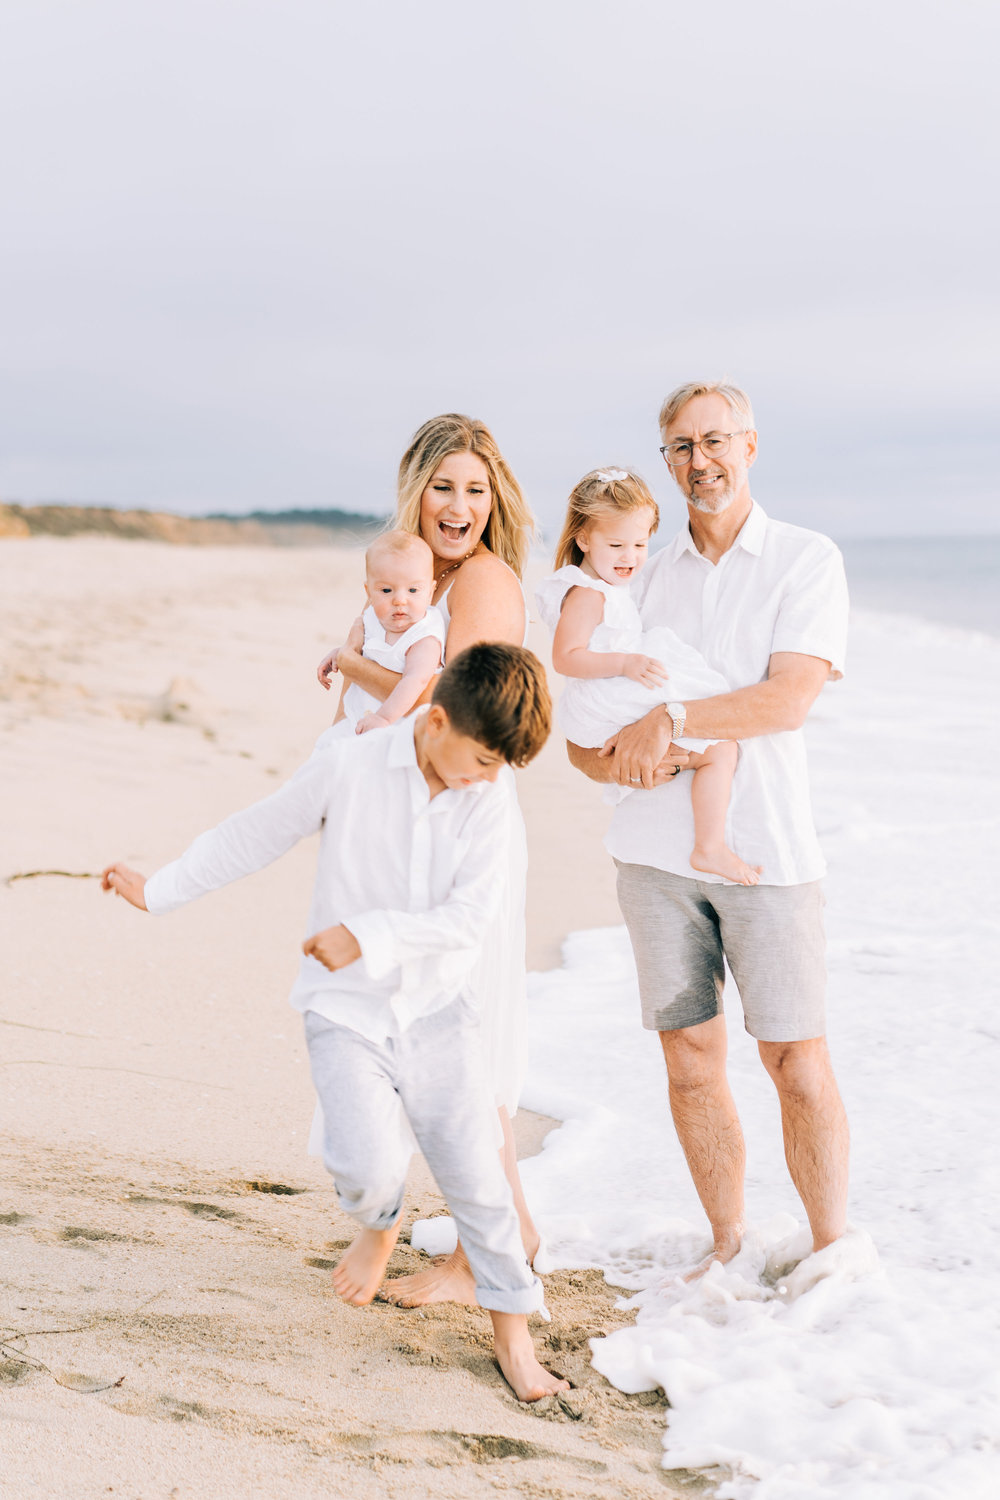 Family lifestyle beach session at Half Moon Bay